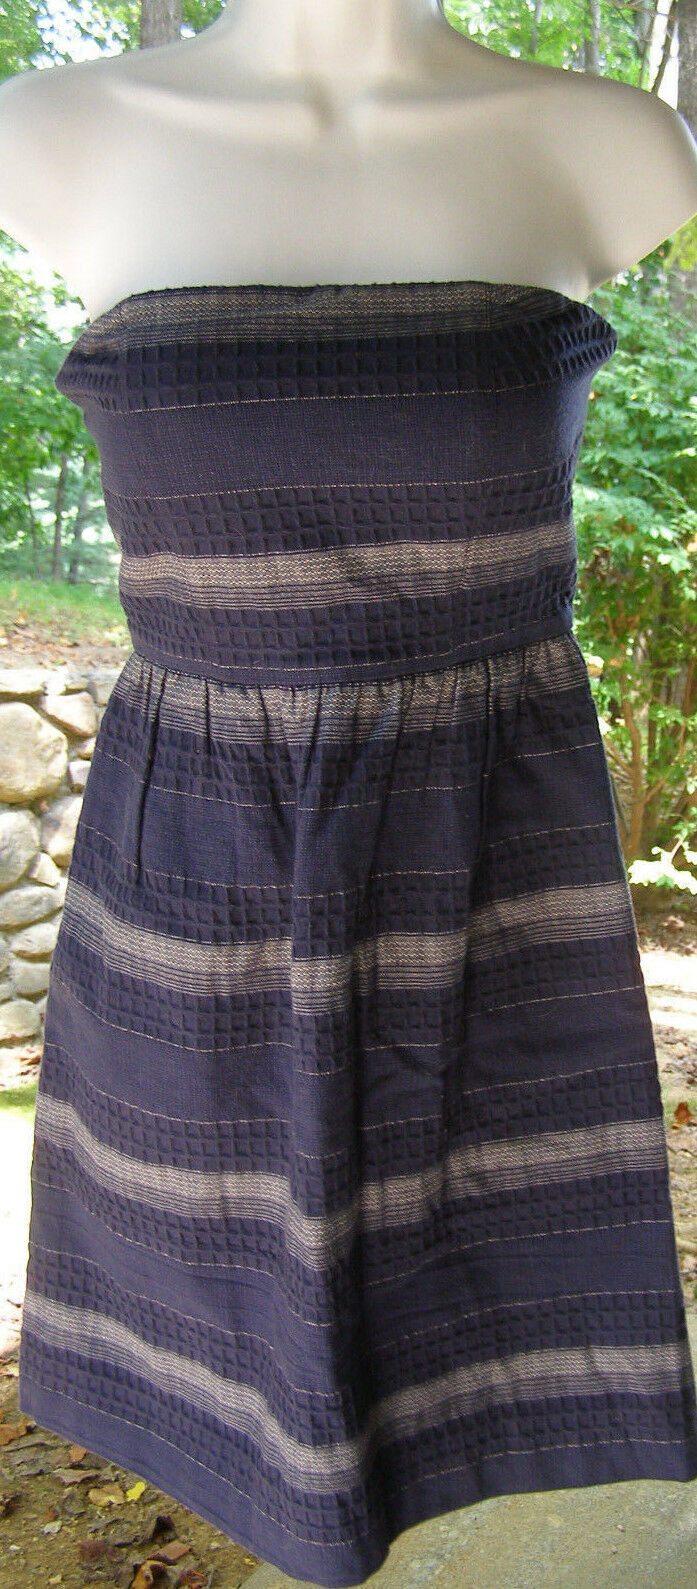 Madewell Woven Stripe Strapless Sundress - Size 2 - New